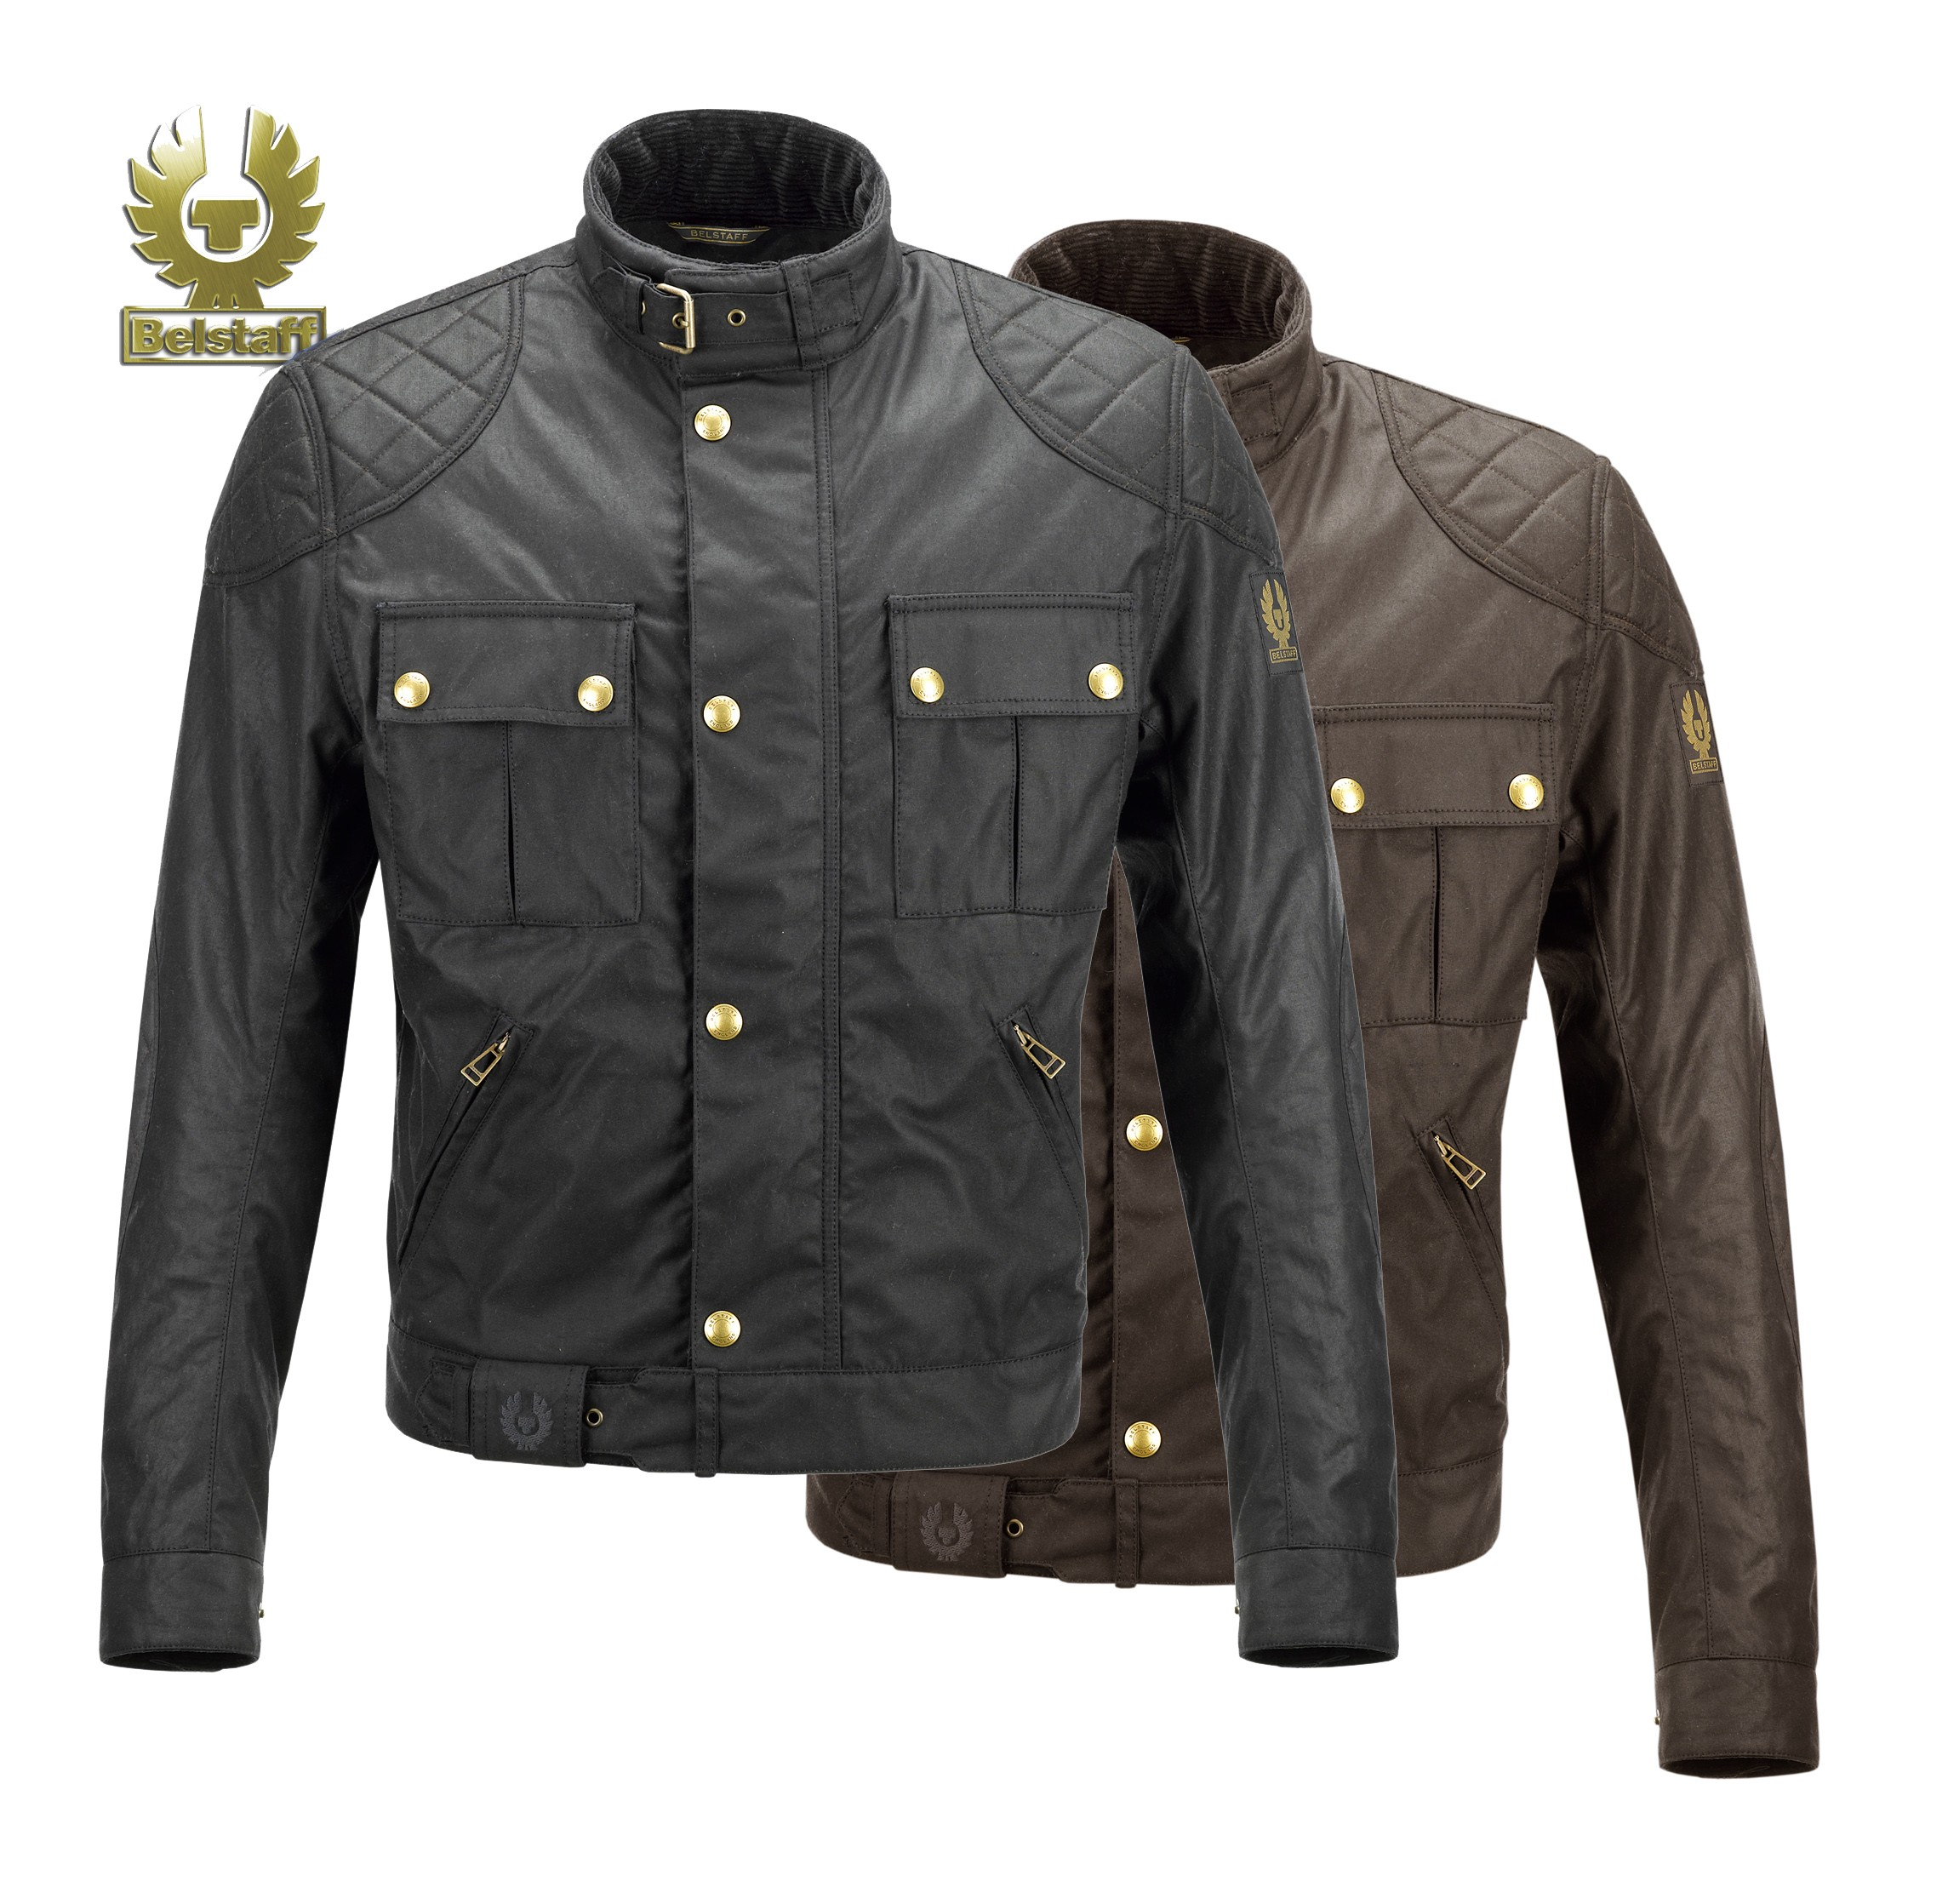 Belstaff Brooklands 'Mojave' Waxed Jacket - Black - Men image #1